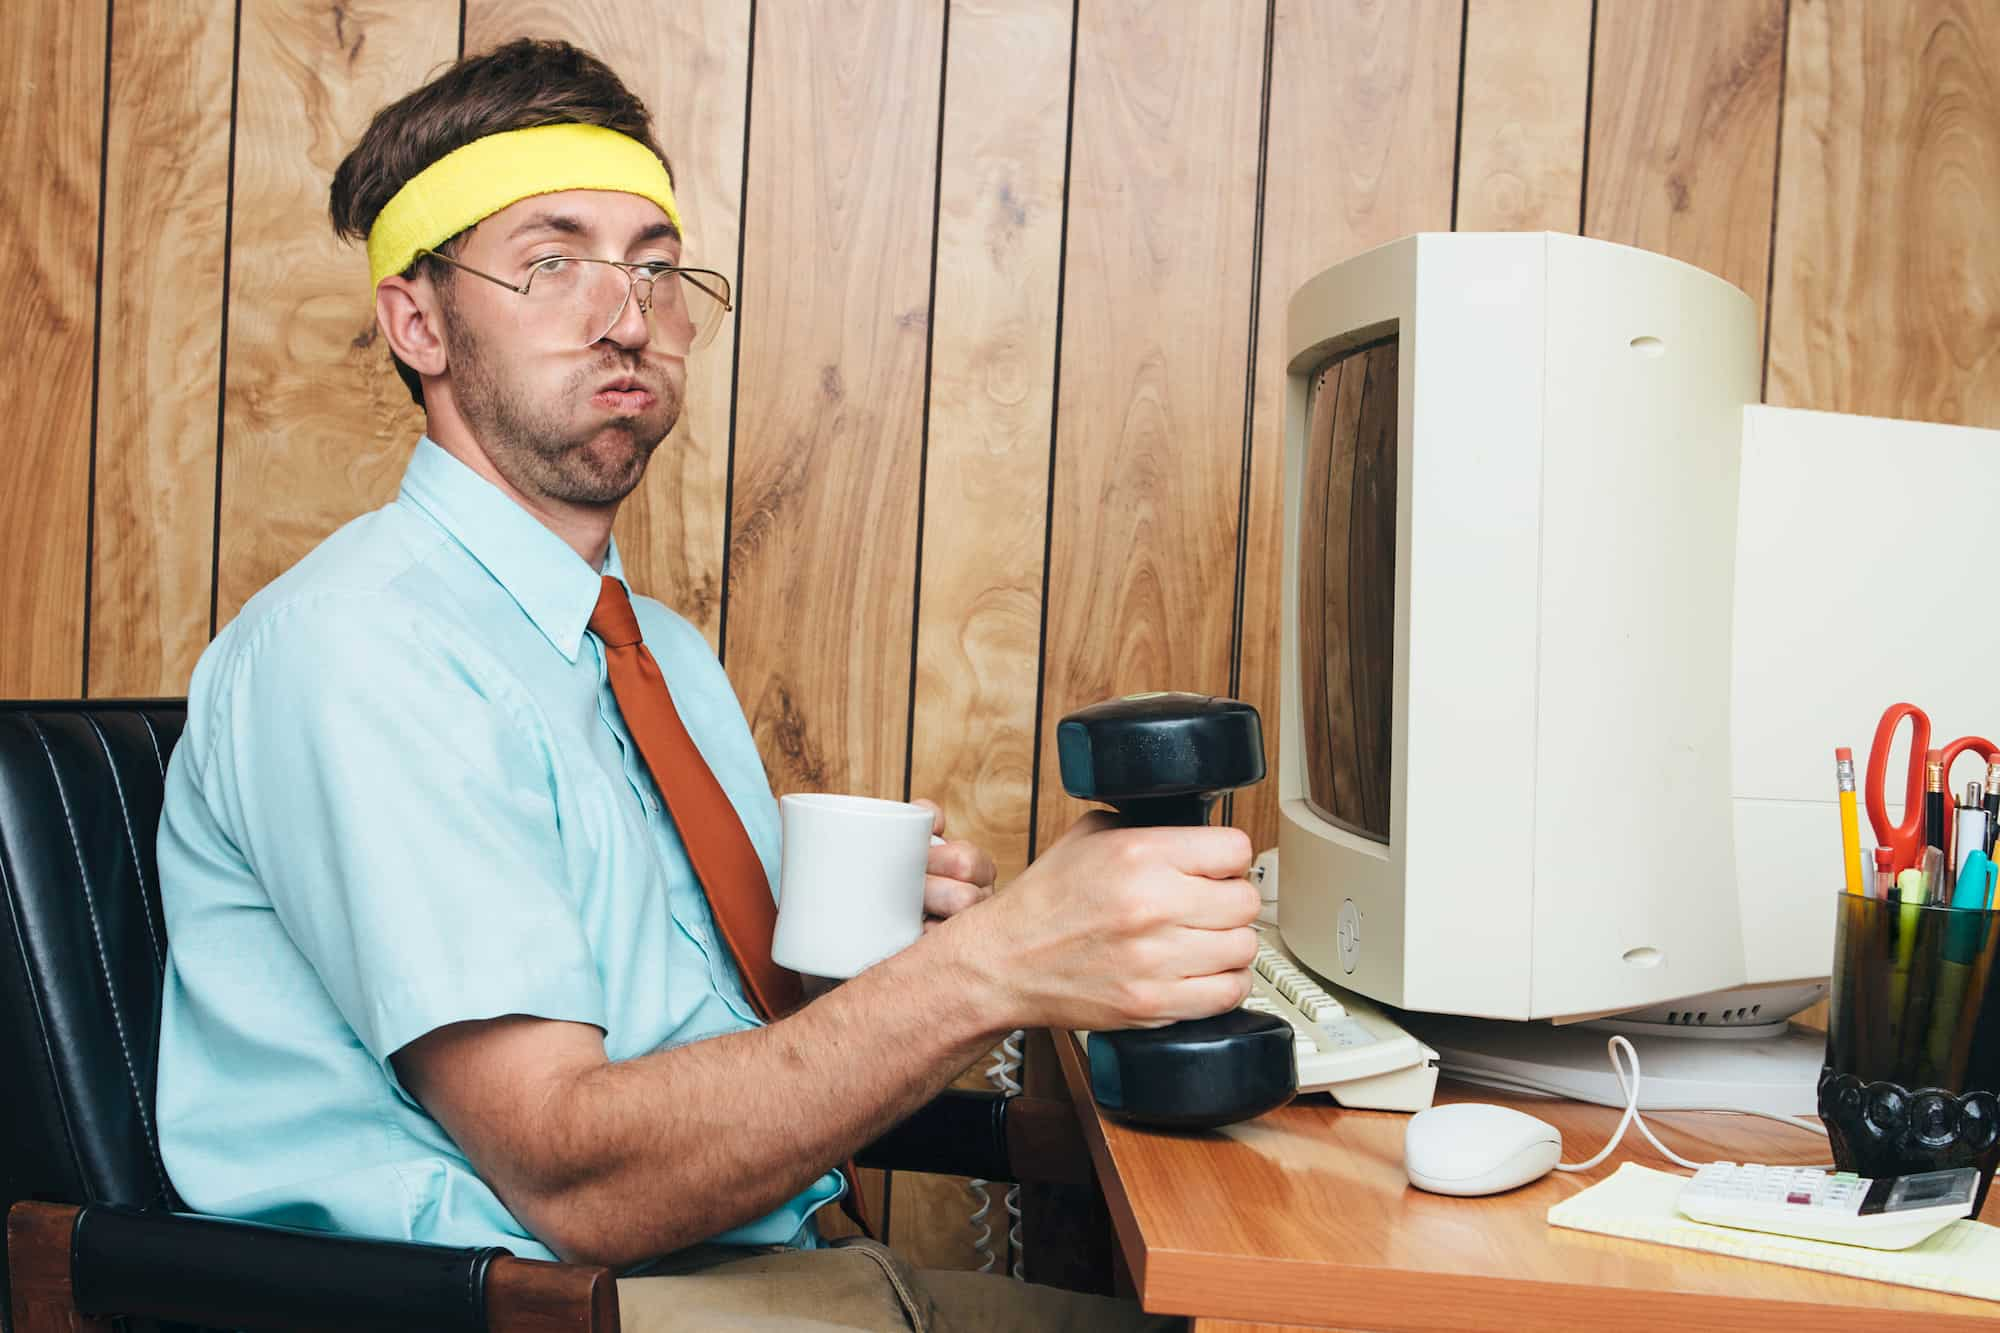 Man at a computer desk with a coffee mug in one hand and a weight in the other, wearing a shirt and tie with exerted expression.